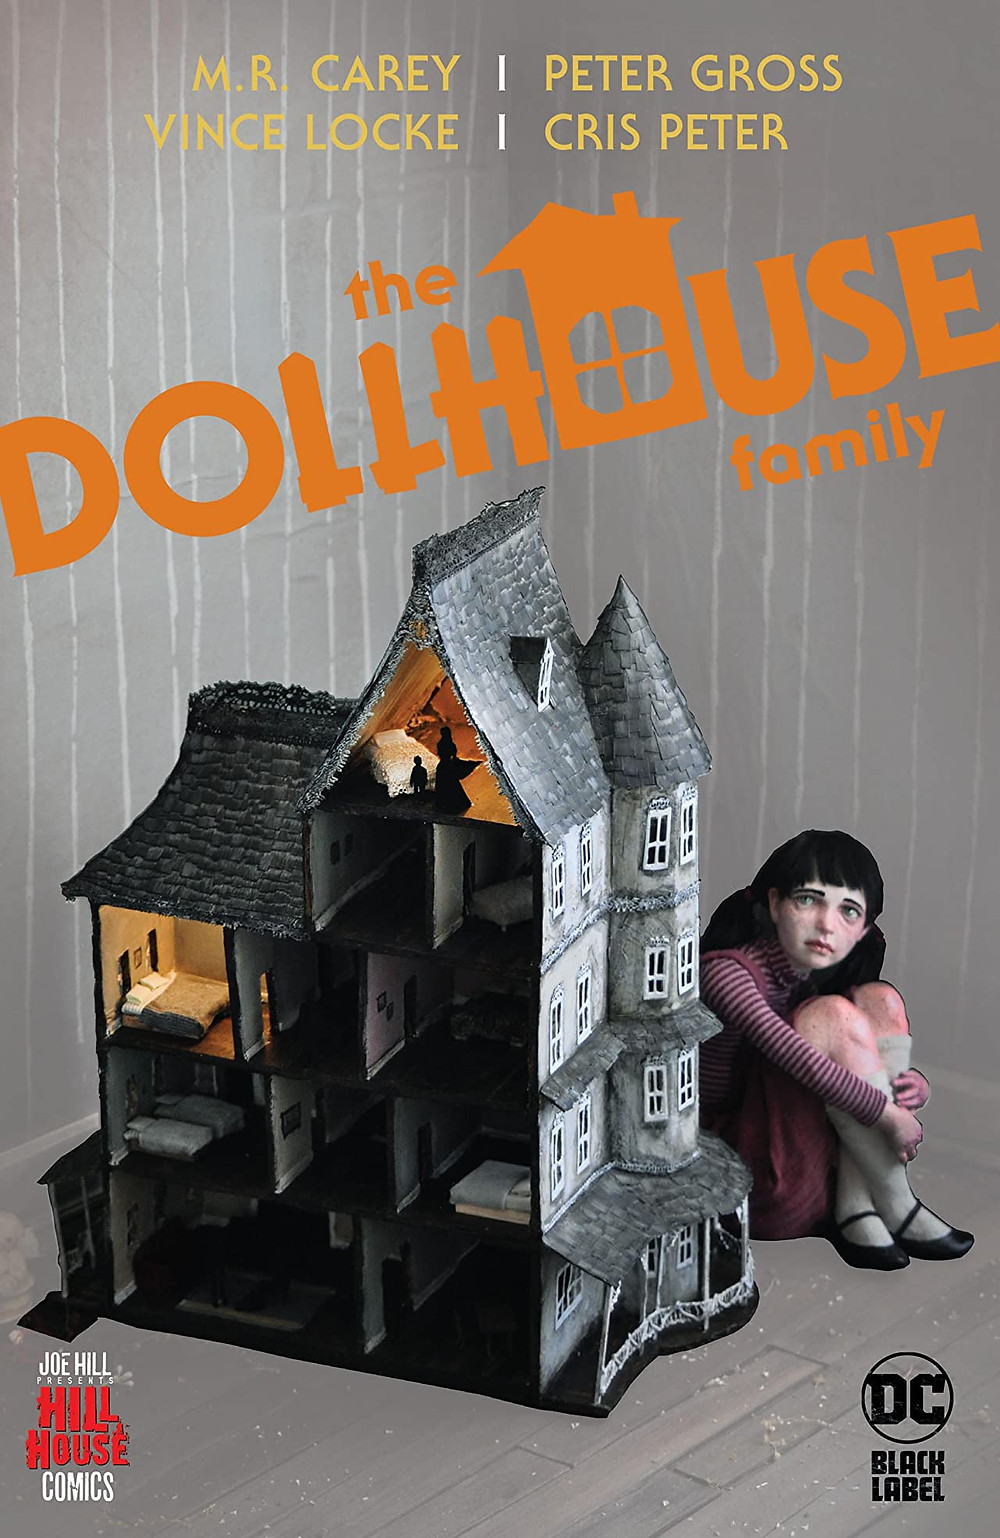 Book cover of M. R. Carey, Peter Gross, Vince Locke, and Cris Peter's The Dollhouse Family